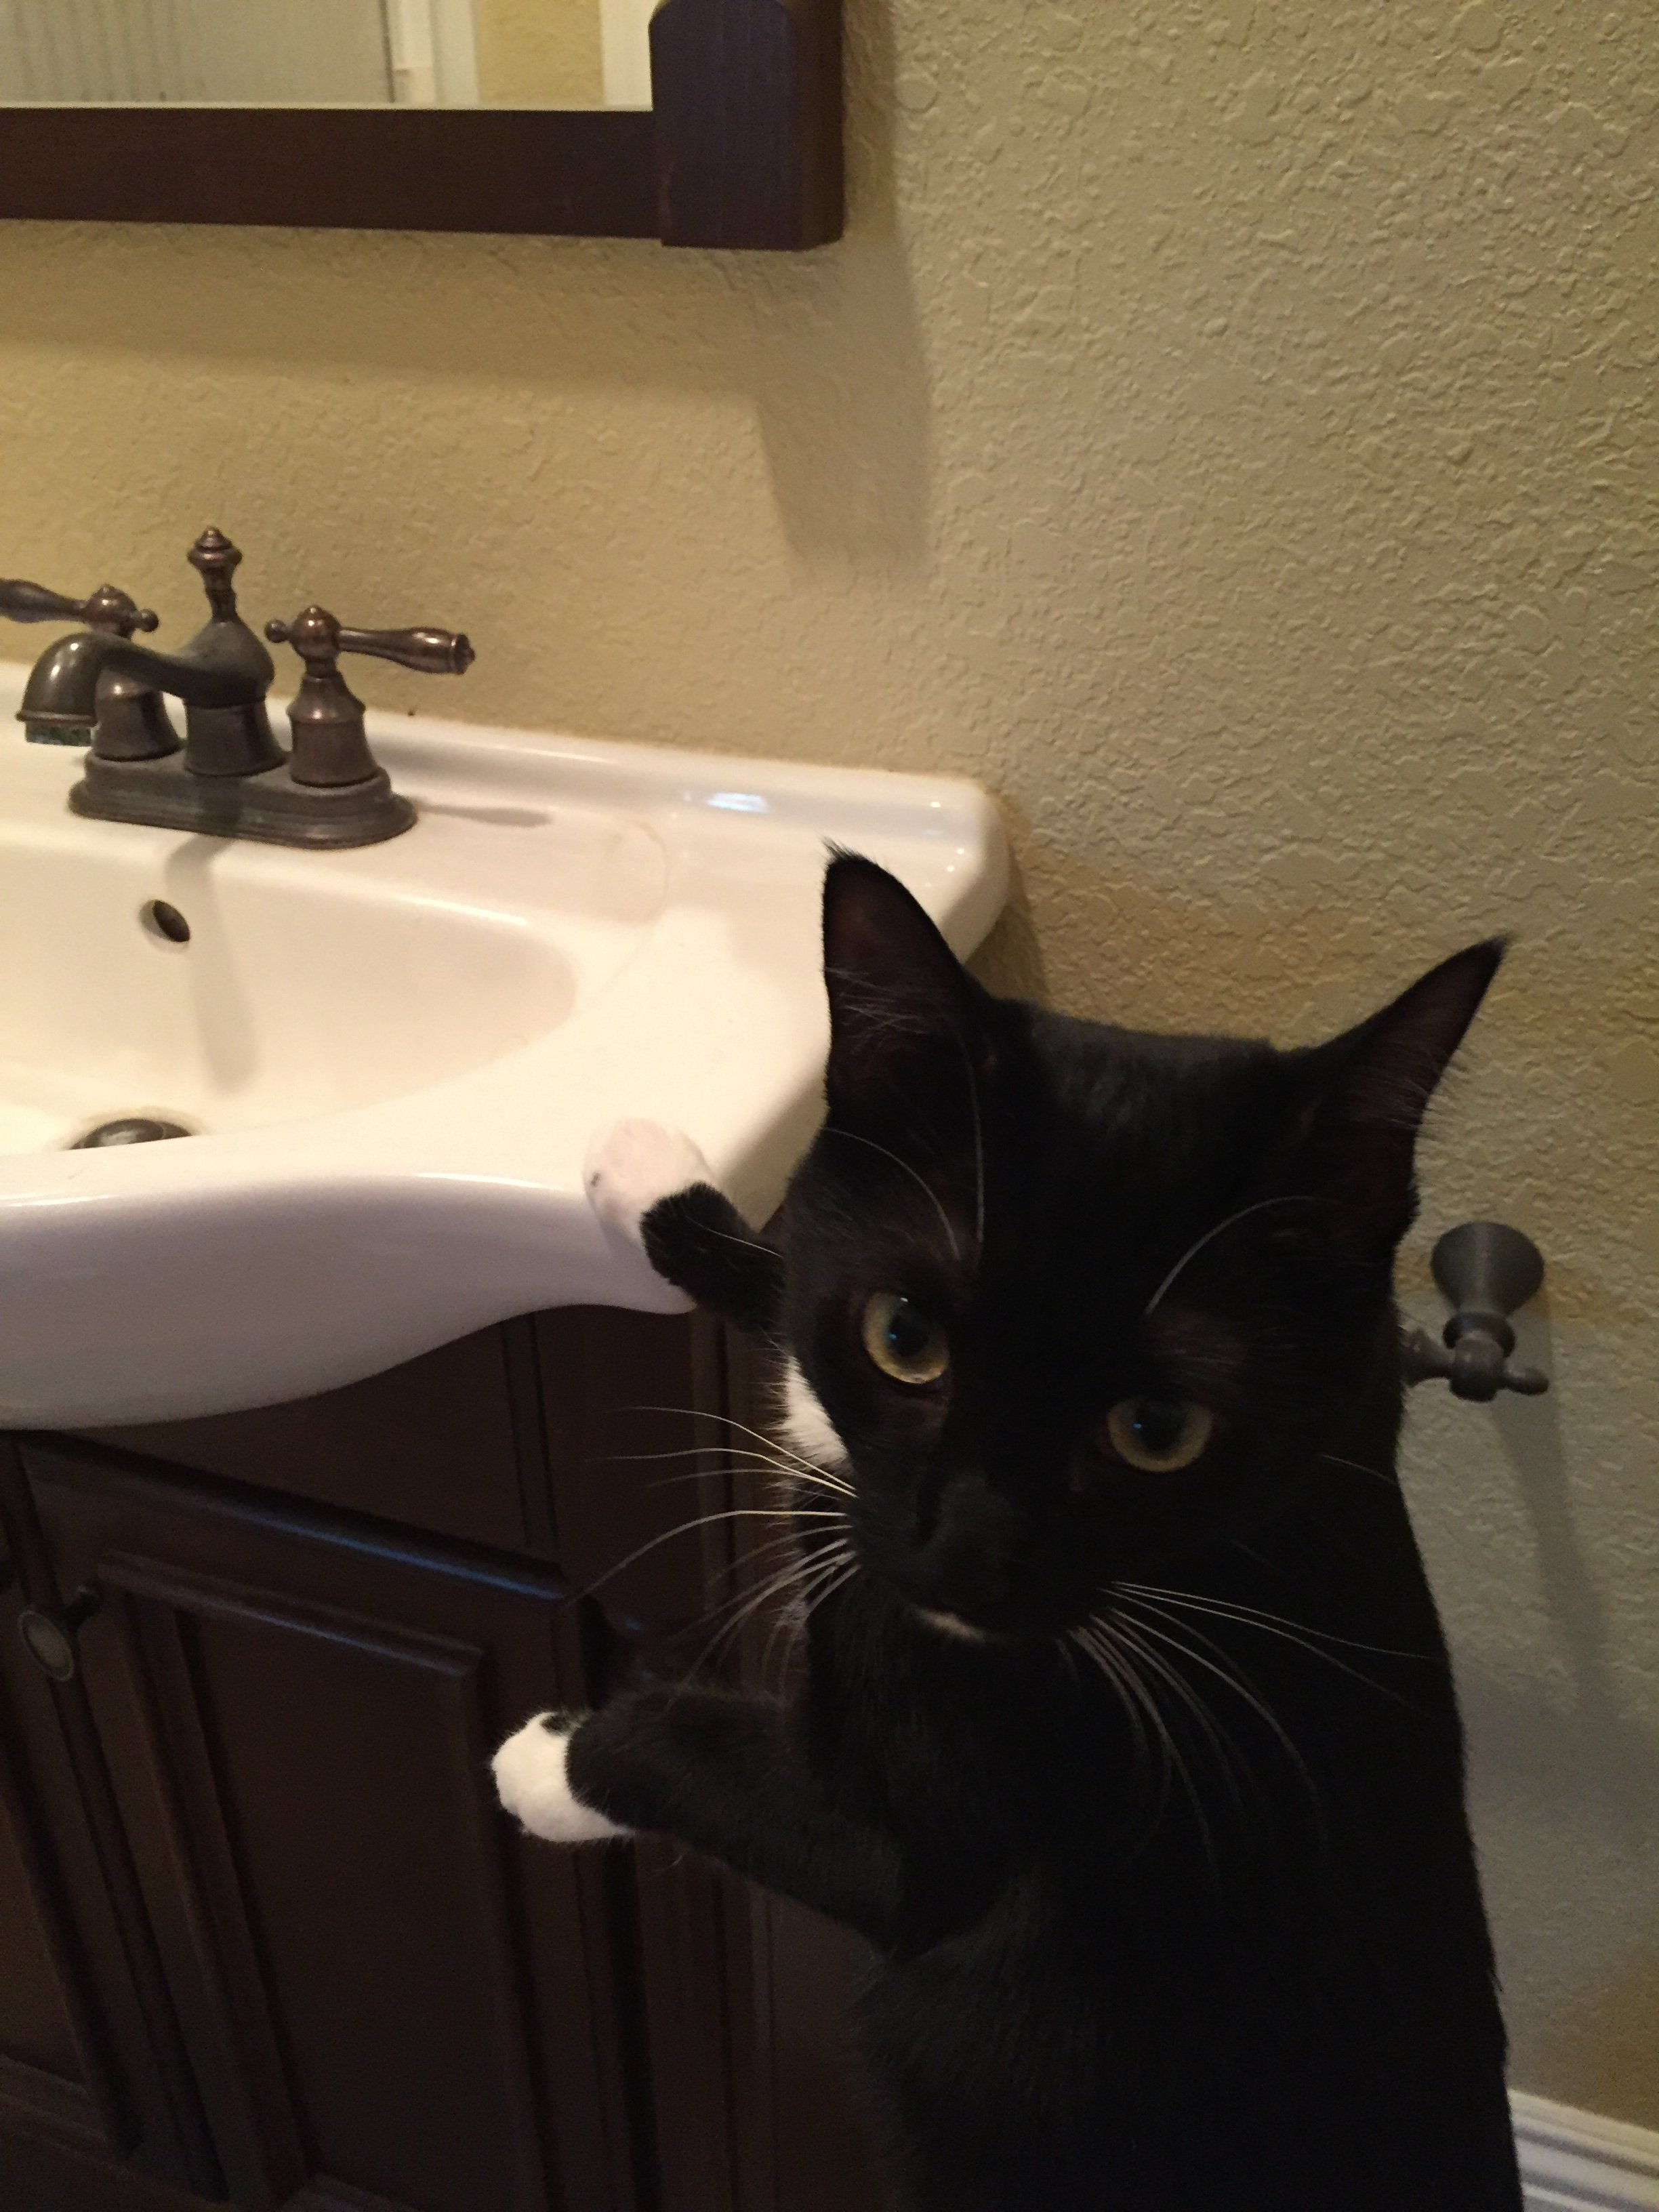 Cat Obsessed With Bathroom Sink | TheCatSite